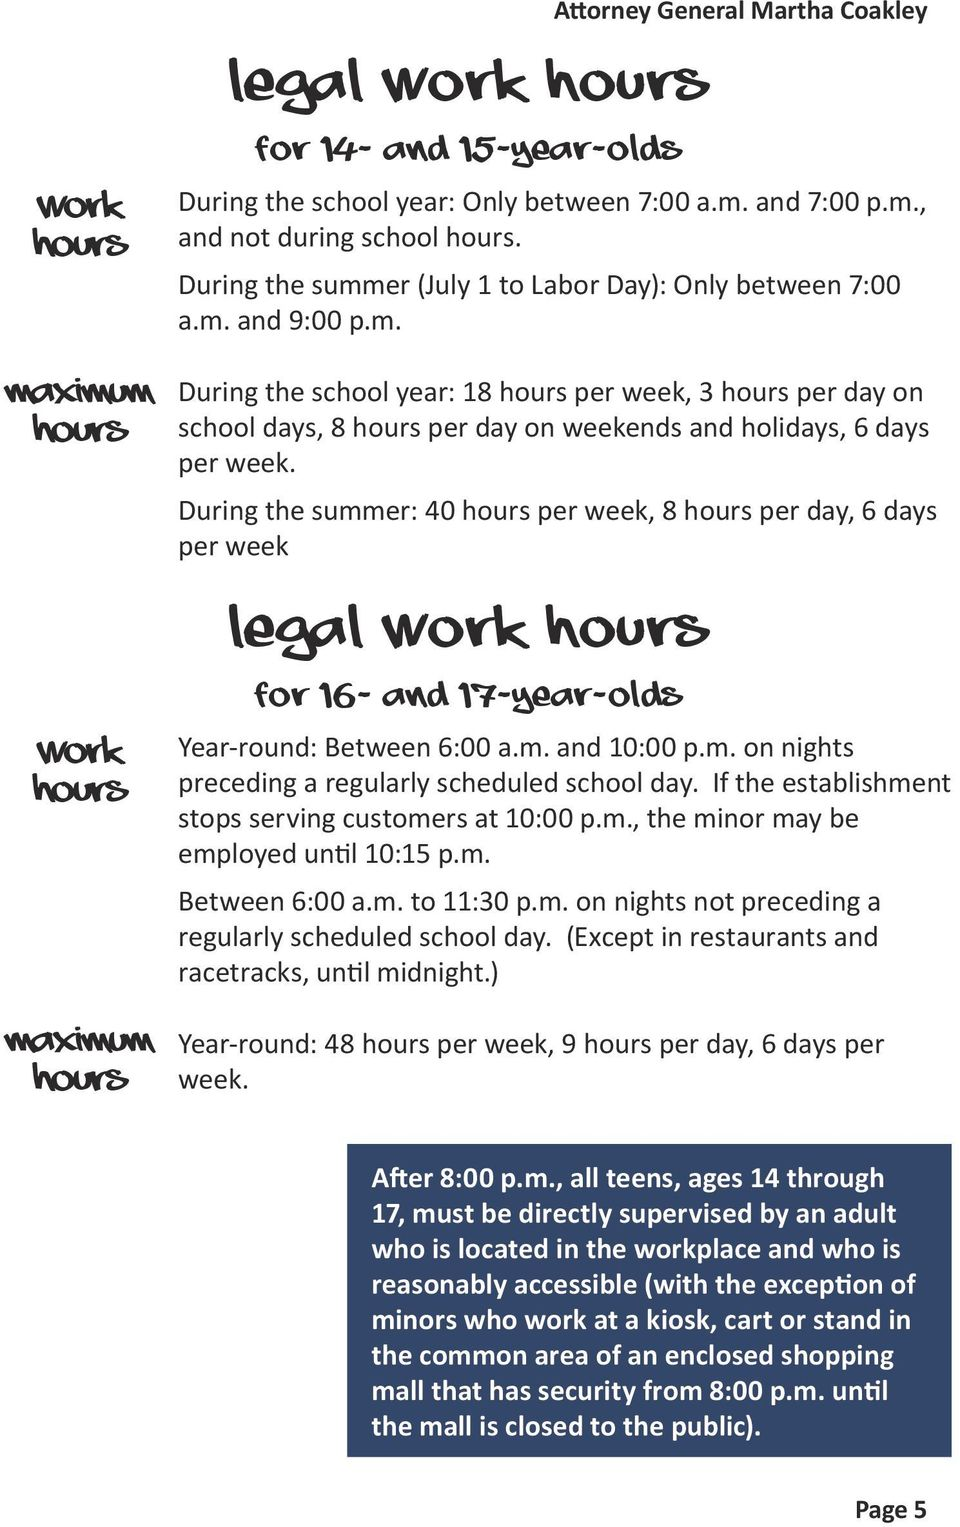 During the summer: 40 hours per week, 8 hours per day, 6 days per week Legal work hours Work Hours maximum Hours For 16- and 17-year-olds Year-round: Between 6:00 a.m. and 10:00 p.m. on nights preceding a regularly scheduled school day.